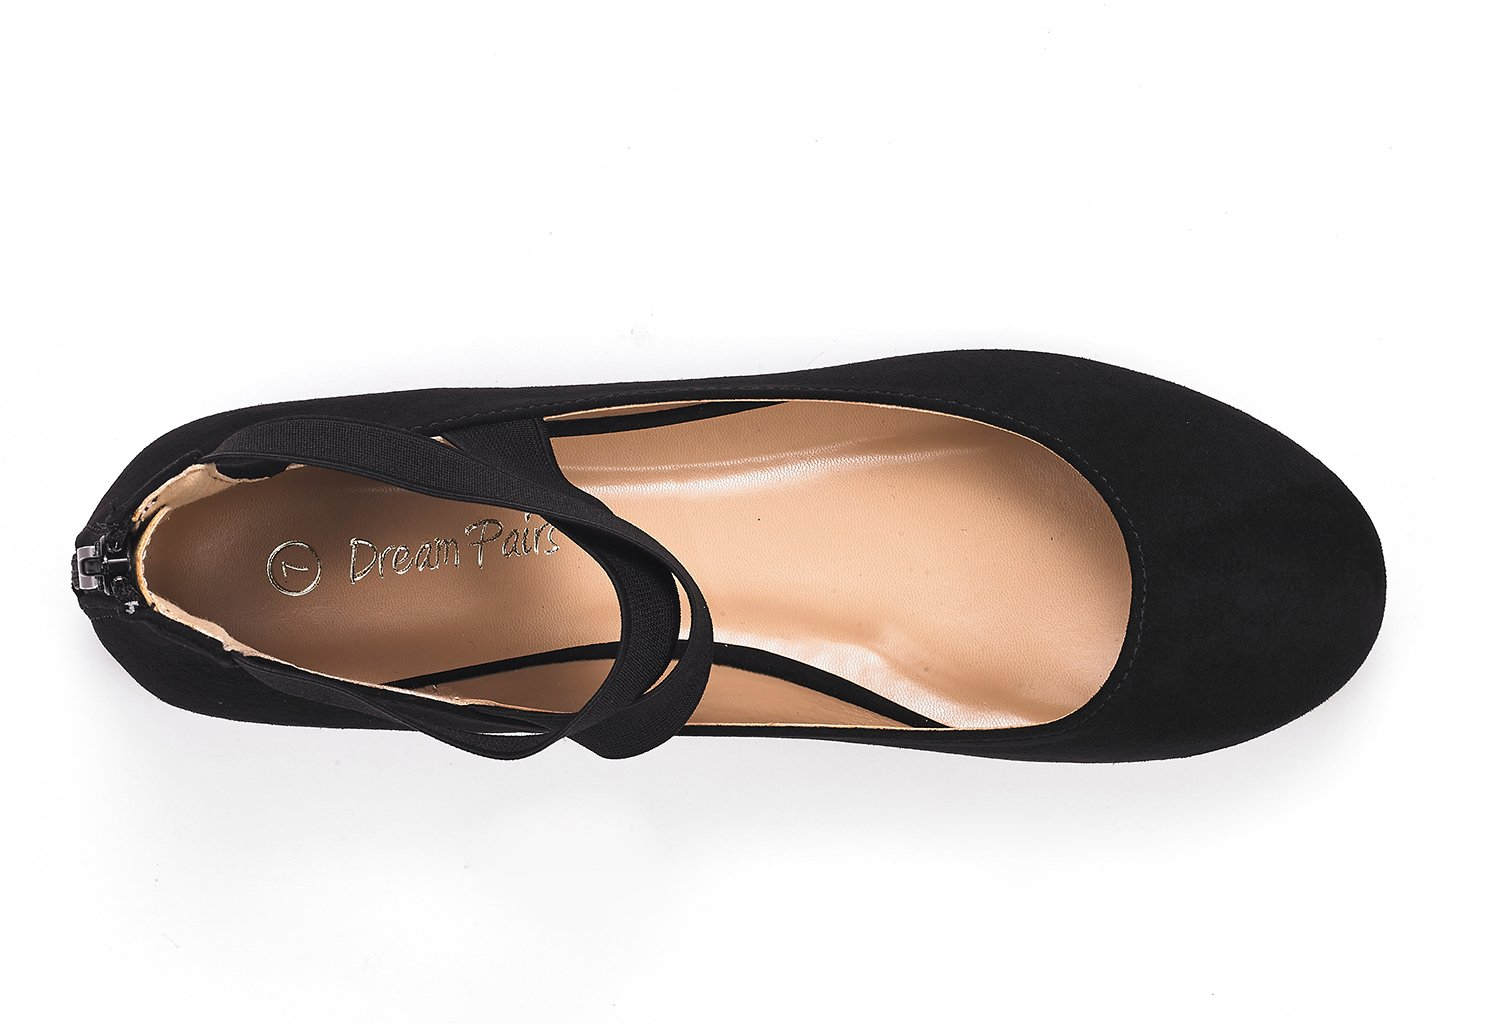 DREAM PAIRS Women's Sole_Stretchy Black Fashion Elastic Ankle Straps Flats Shoes Size 9 M US by DREAM PAIRS (Image #4)